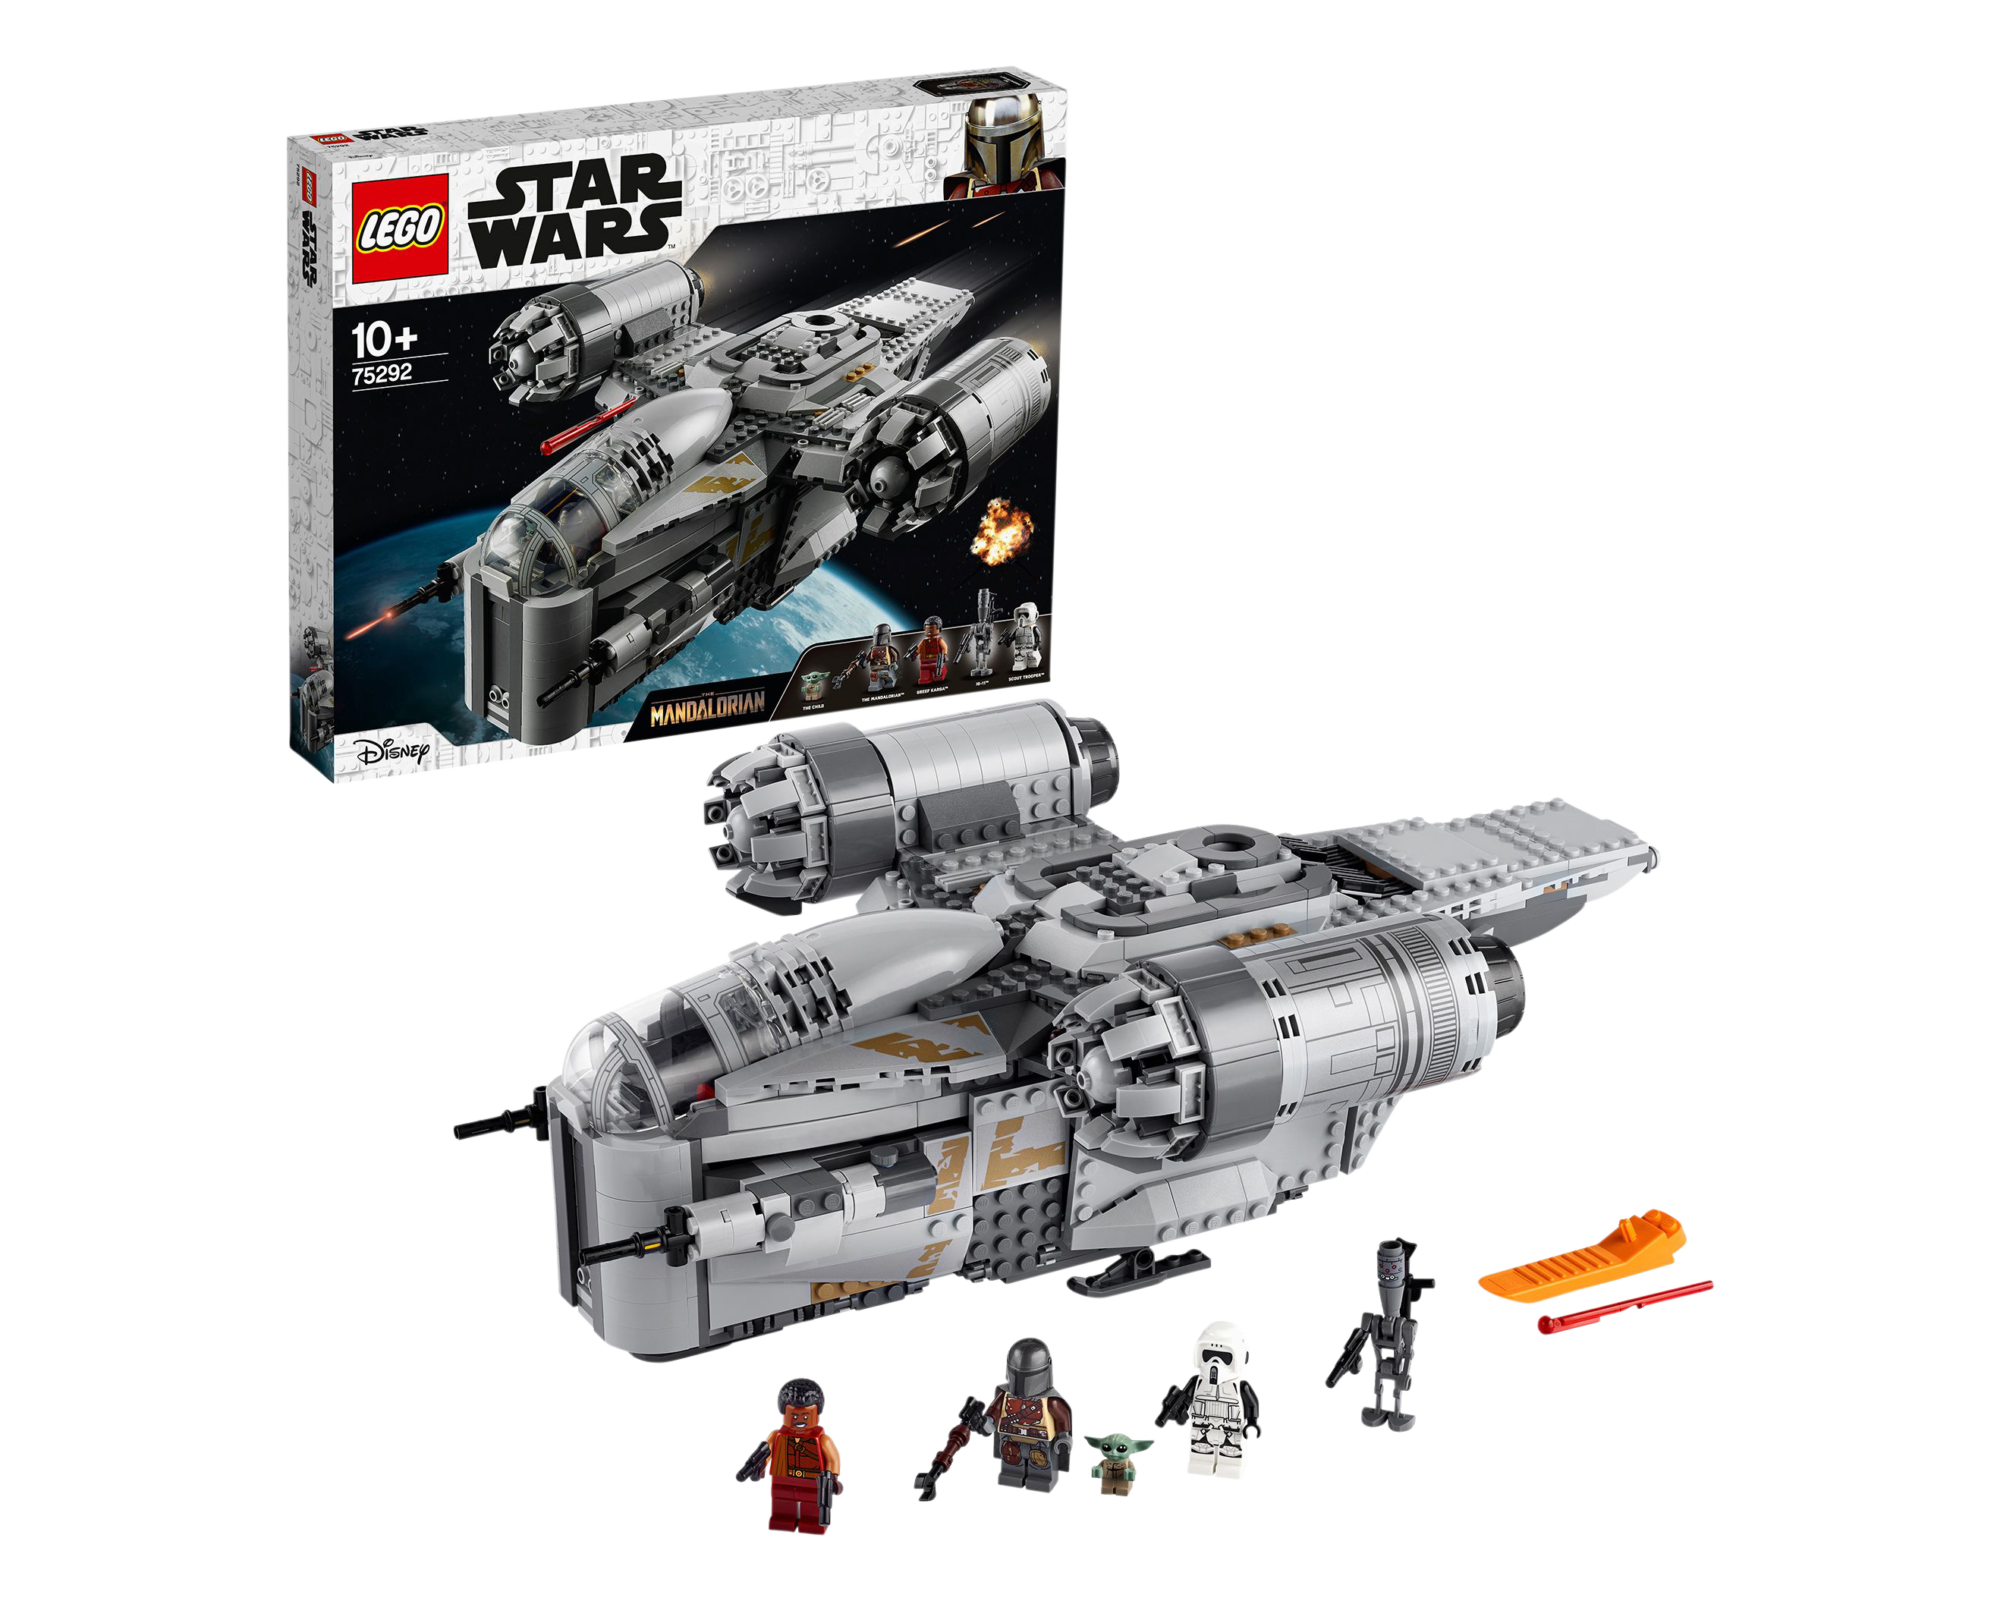 l-e-g-o-star-wars-the-mandalorian-bounty-hunter-transport-starship-toy,-currently-priced-at-£119.99.png